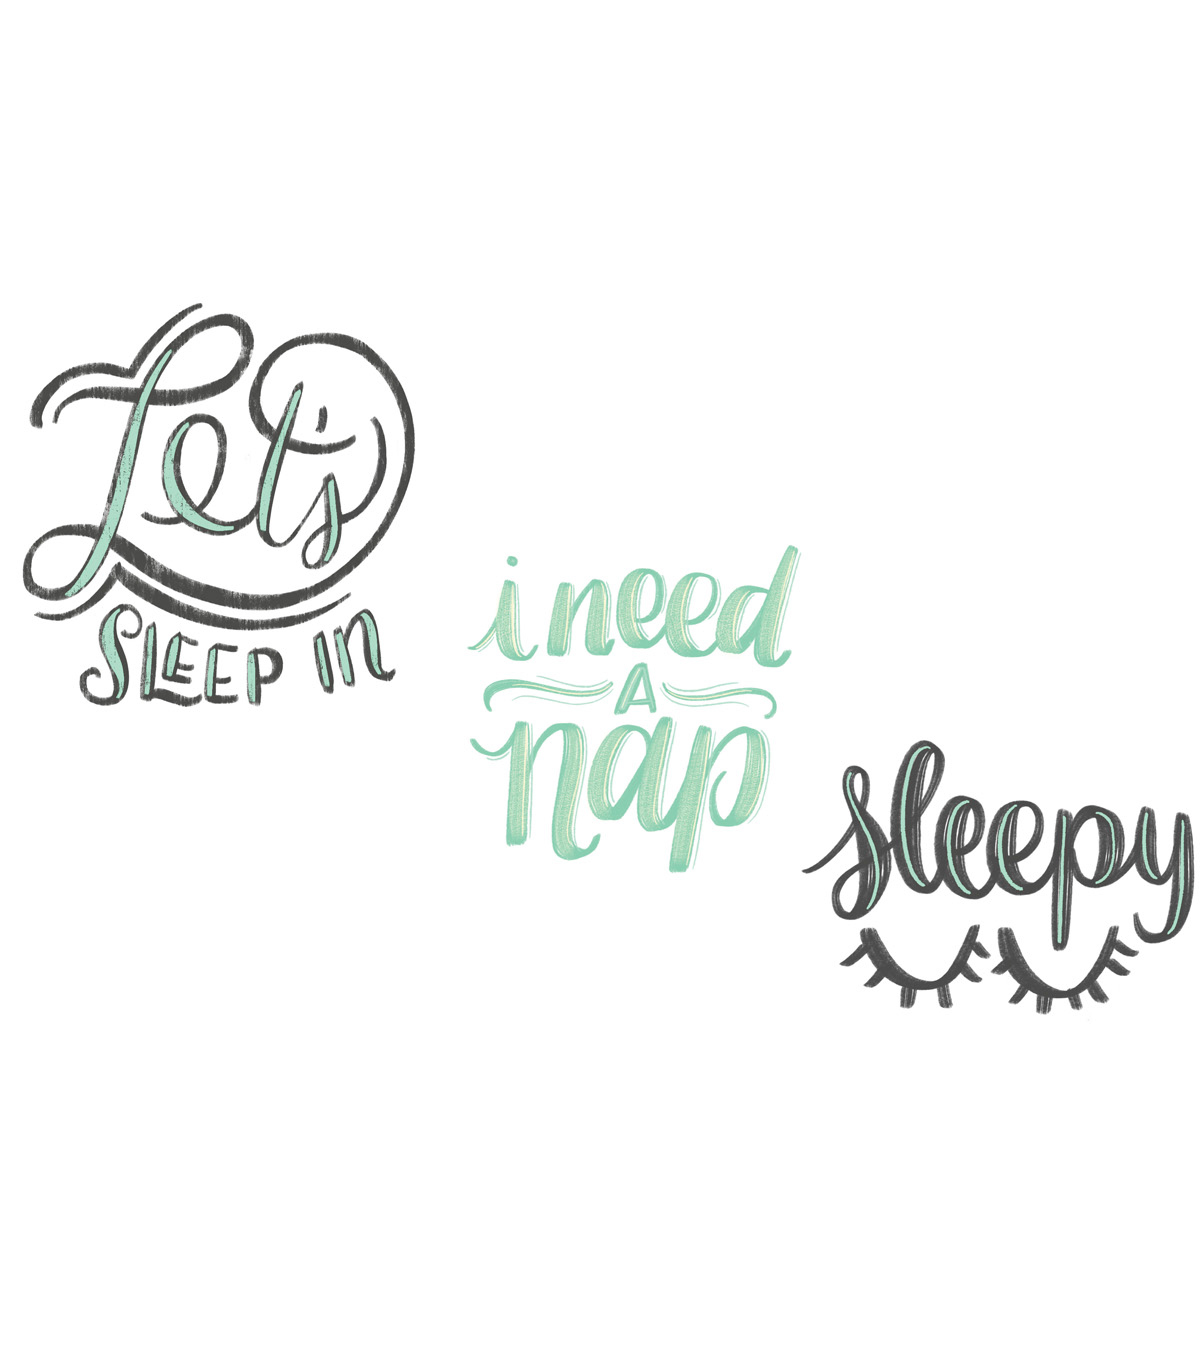 Cricut Small Iron-On Design-Let\u0027s Sleep In, I Need a Nap, Sleepy